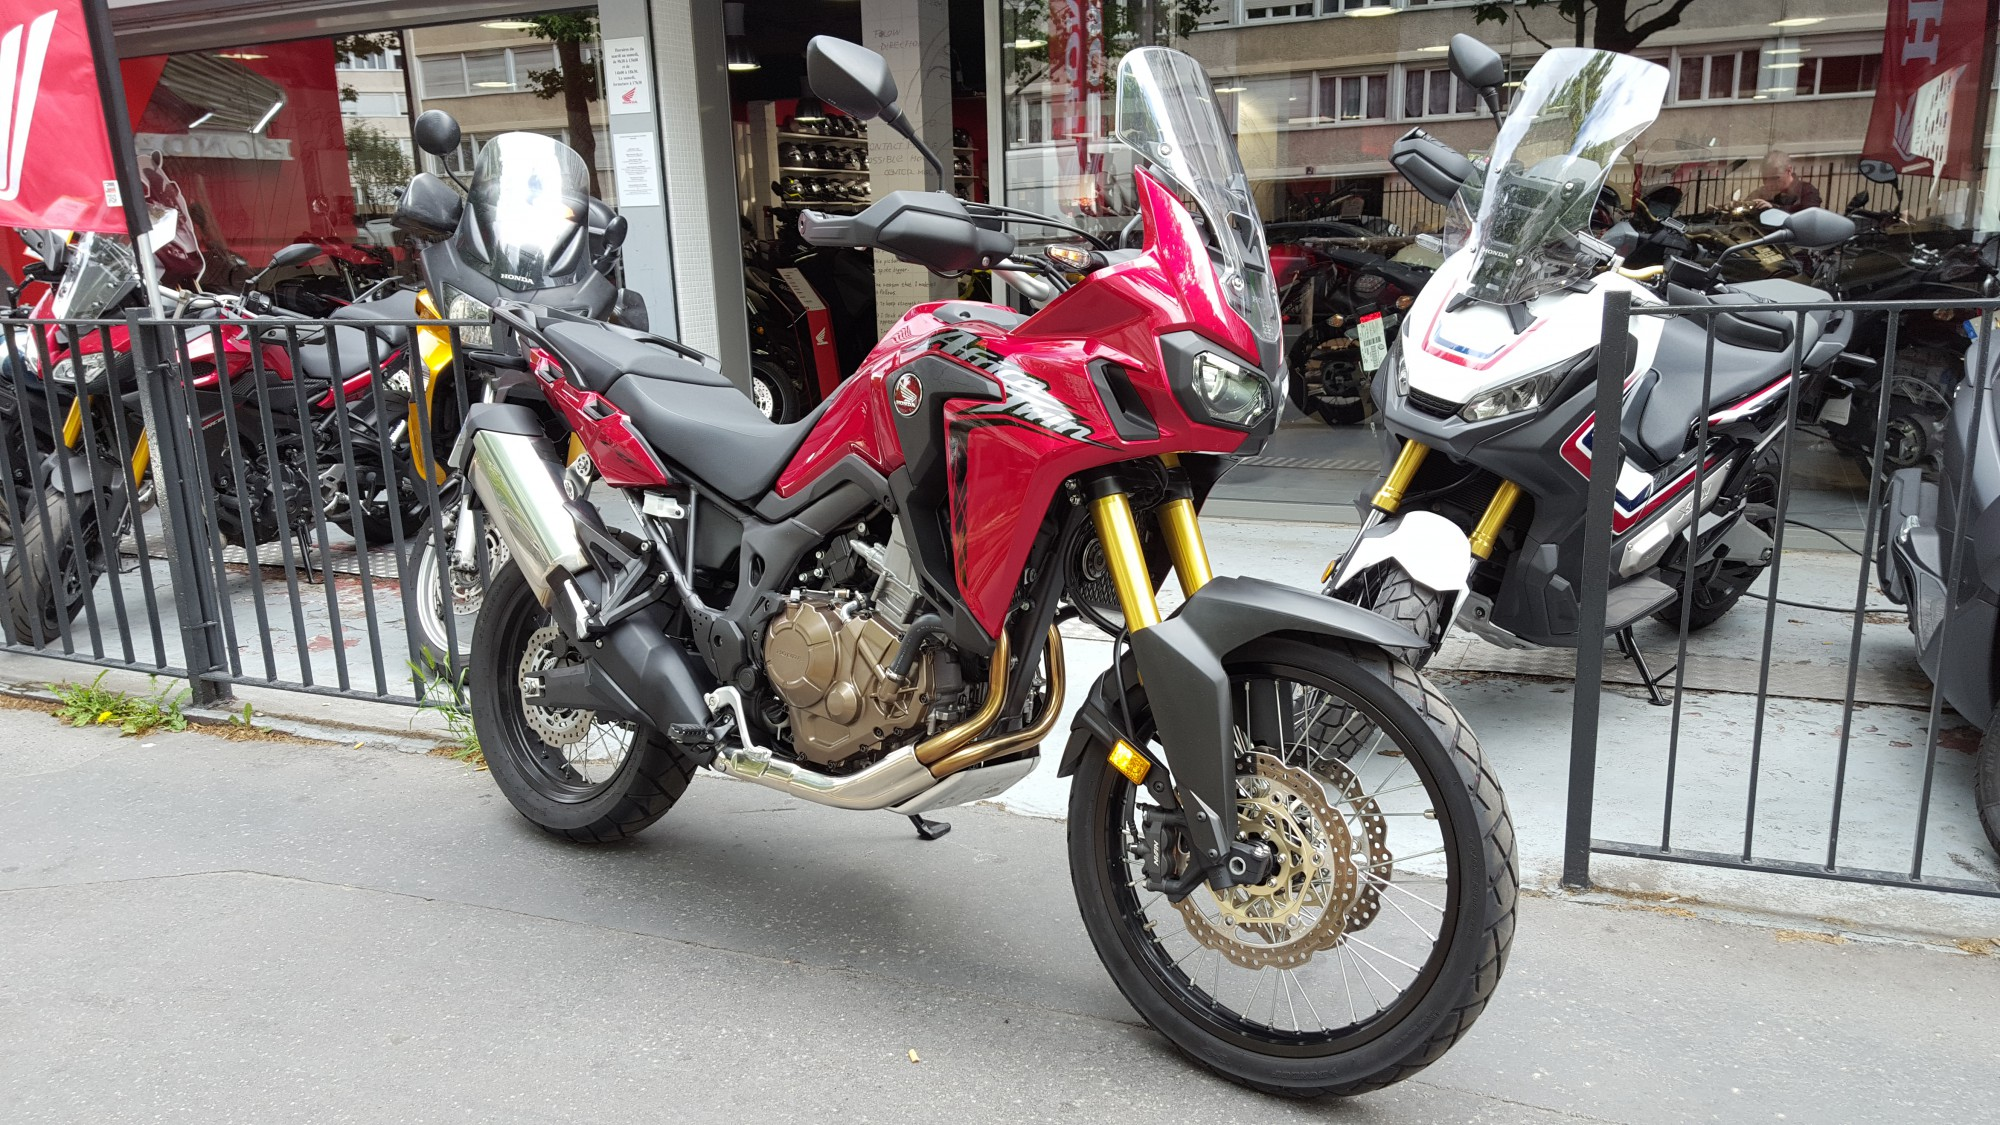 HONDA 1000 CRF 1000 AFRICA TWIN STD